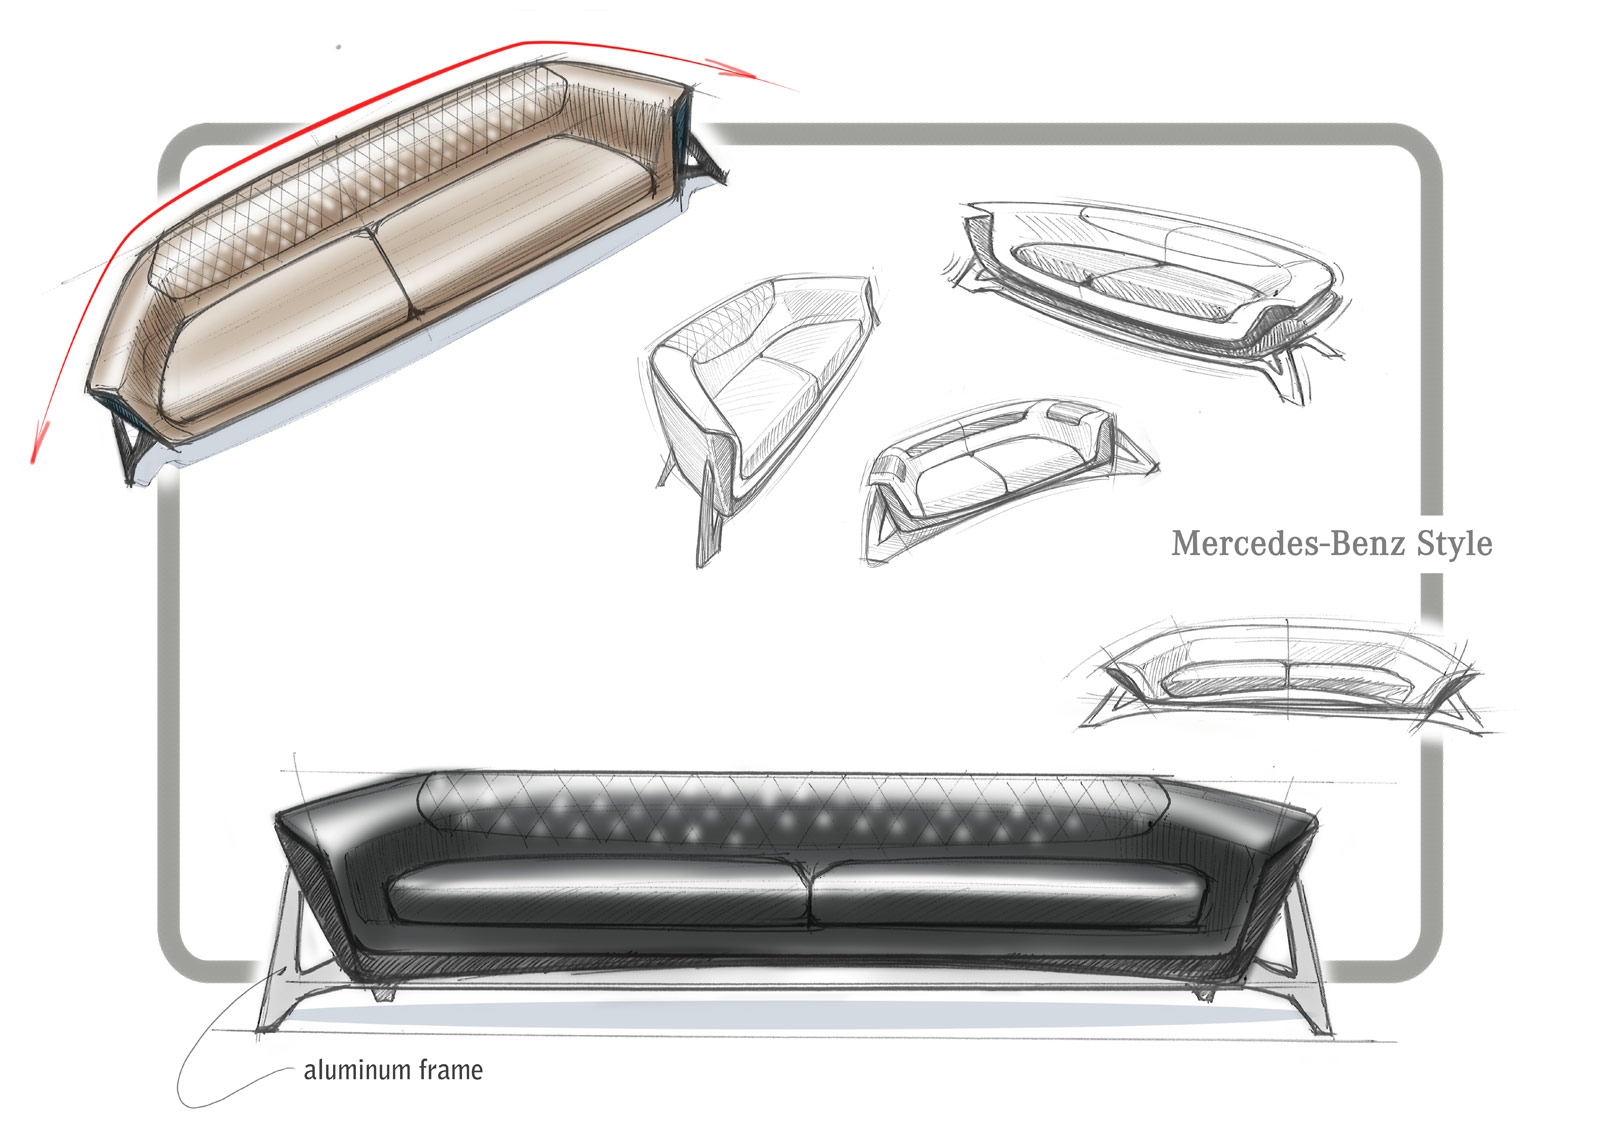 Mercedes-Benz unveils furniture collection - Car Body Design